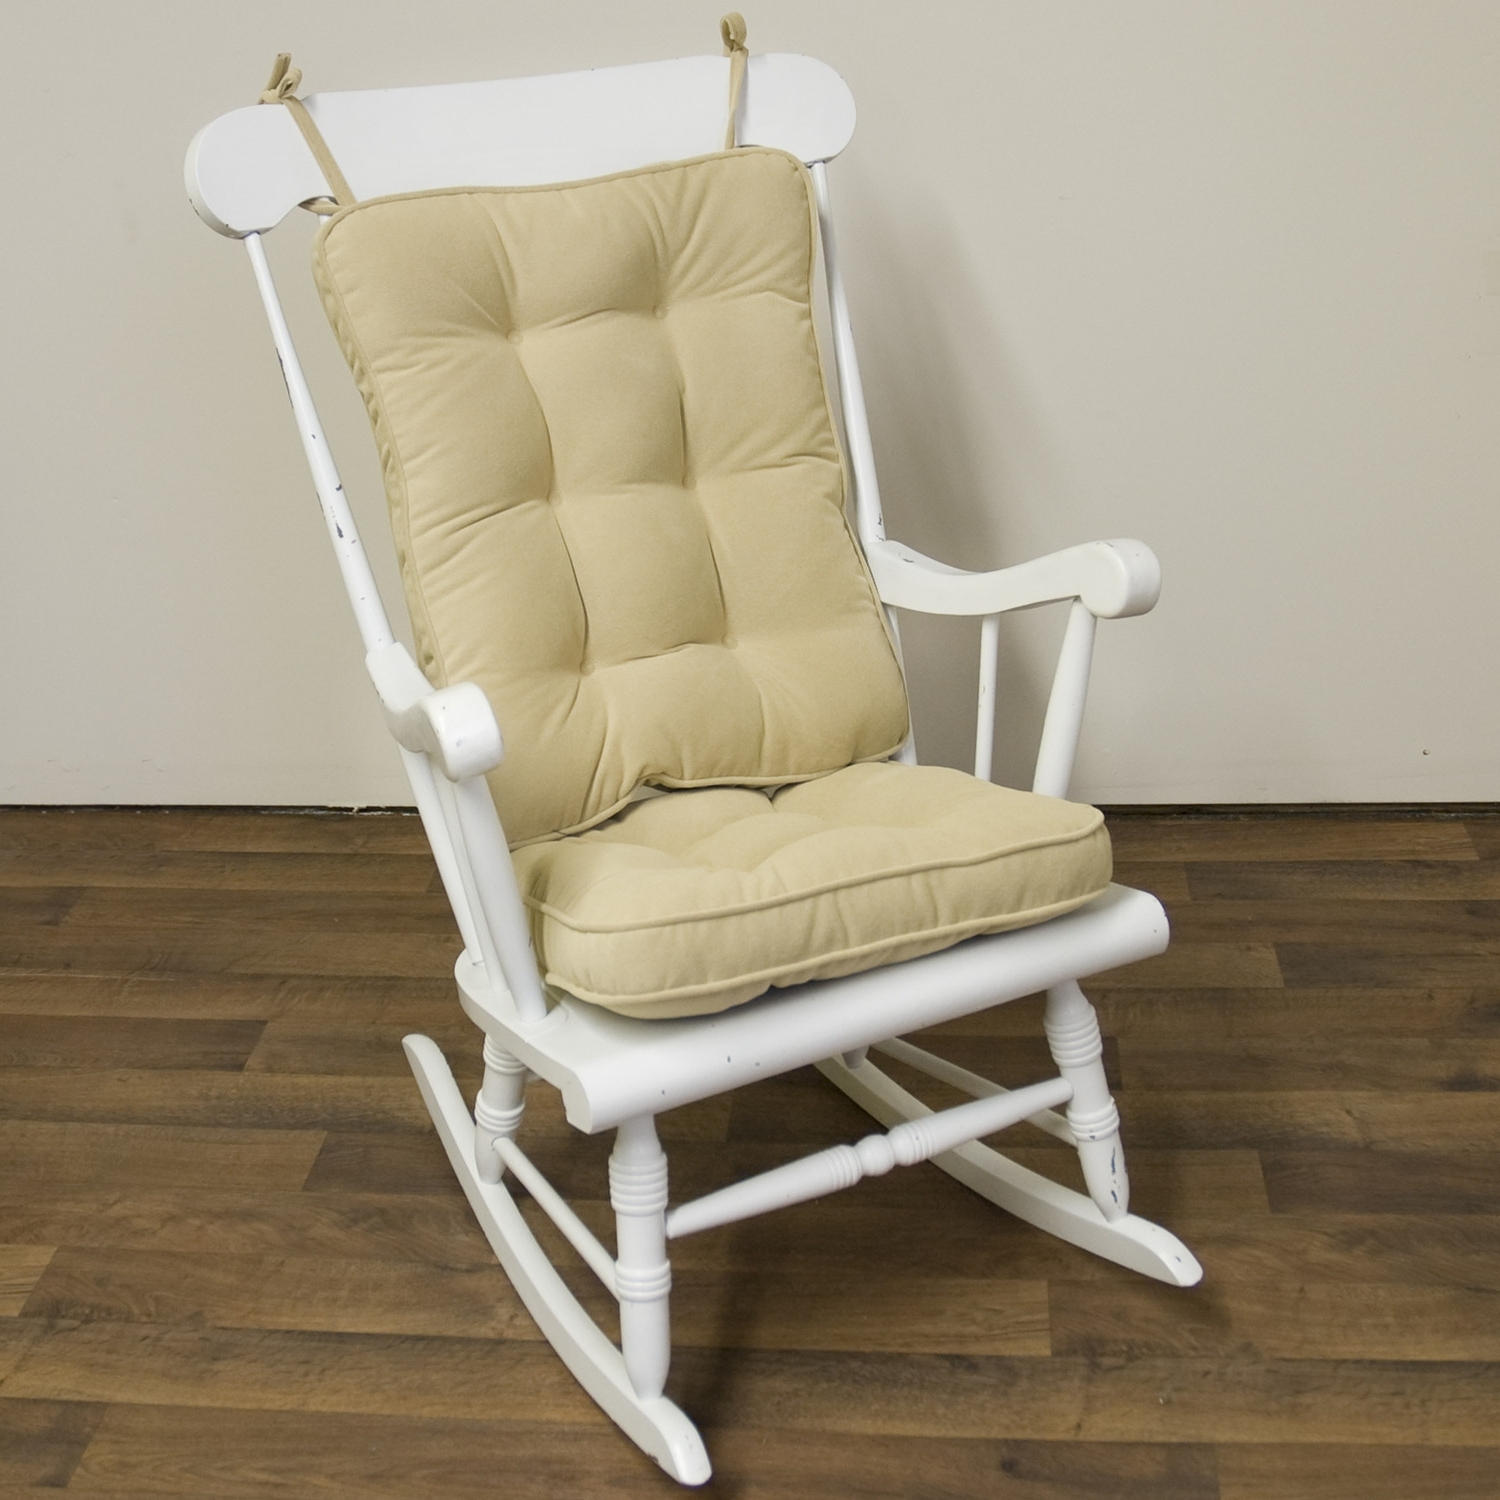 2018 Rocking Chairs With Lumbar Support Throughout Piece Rocking Chair Cushion Set Cream Color Seat Back Nylon (View 2 of 20)